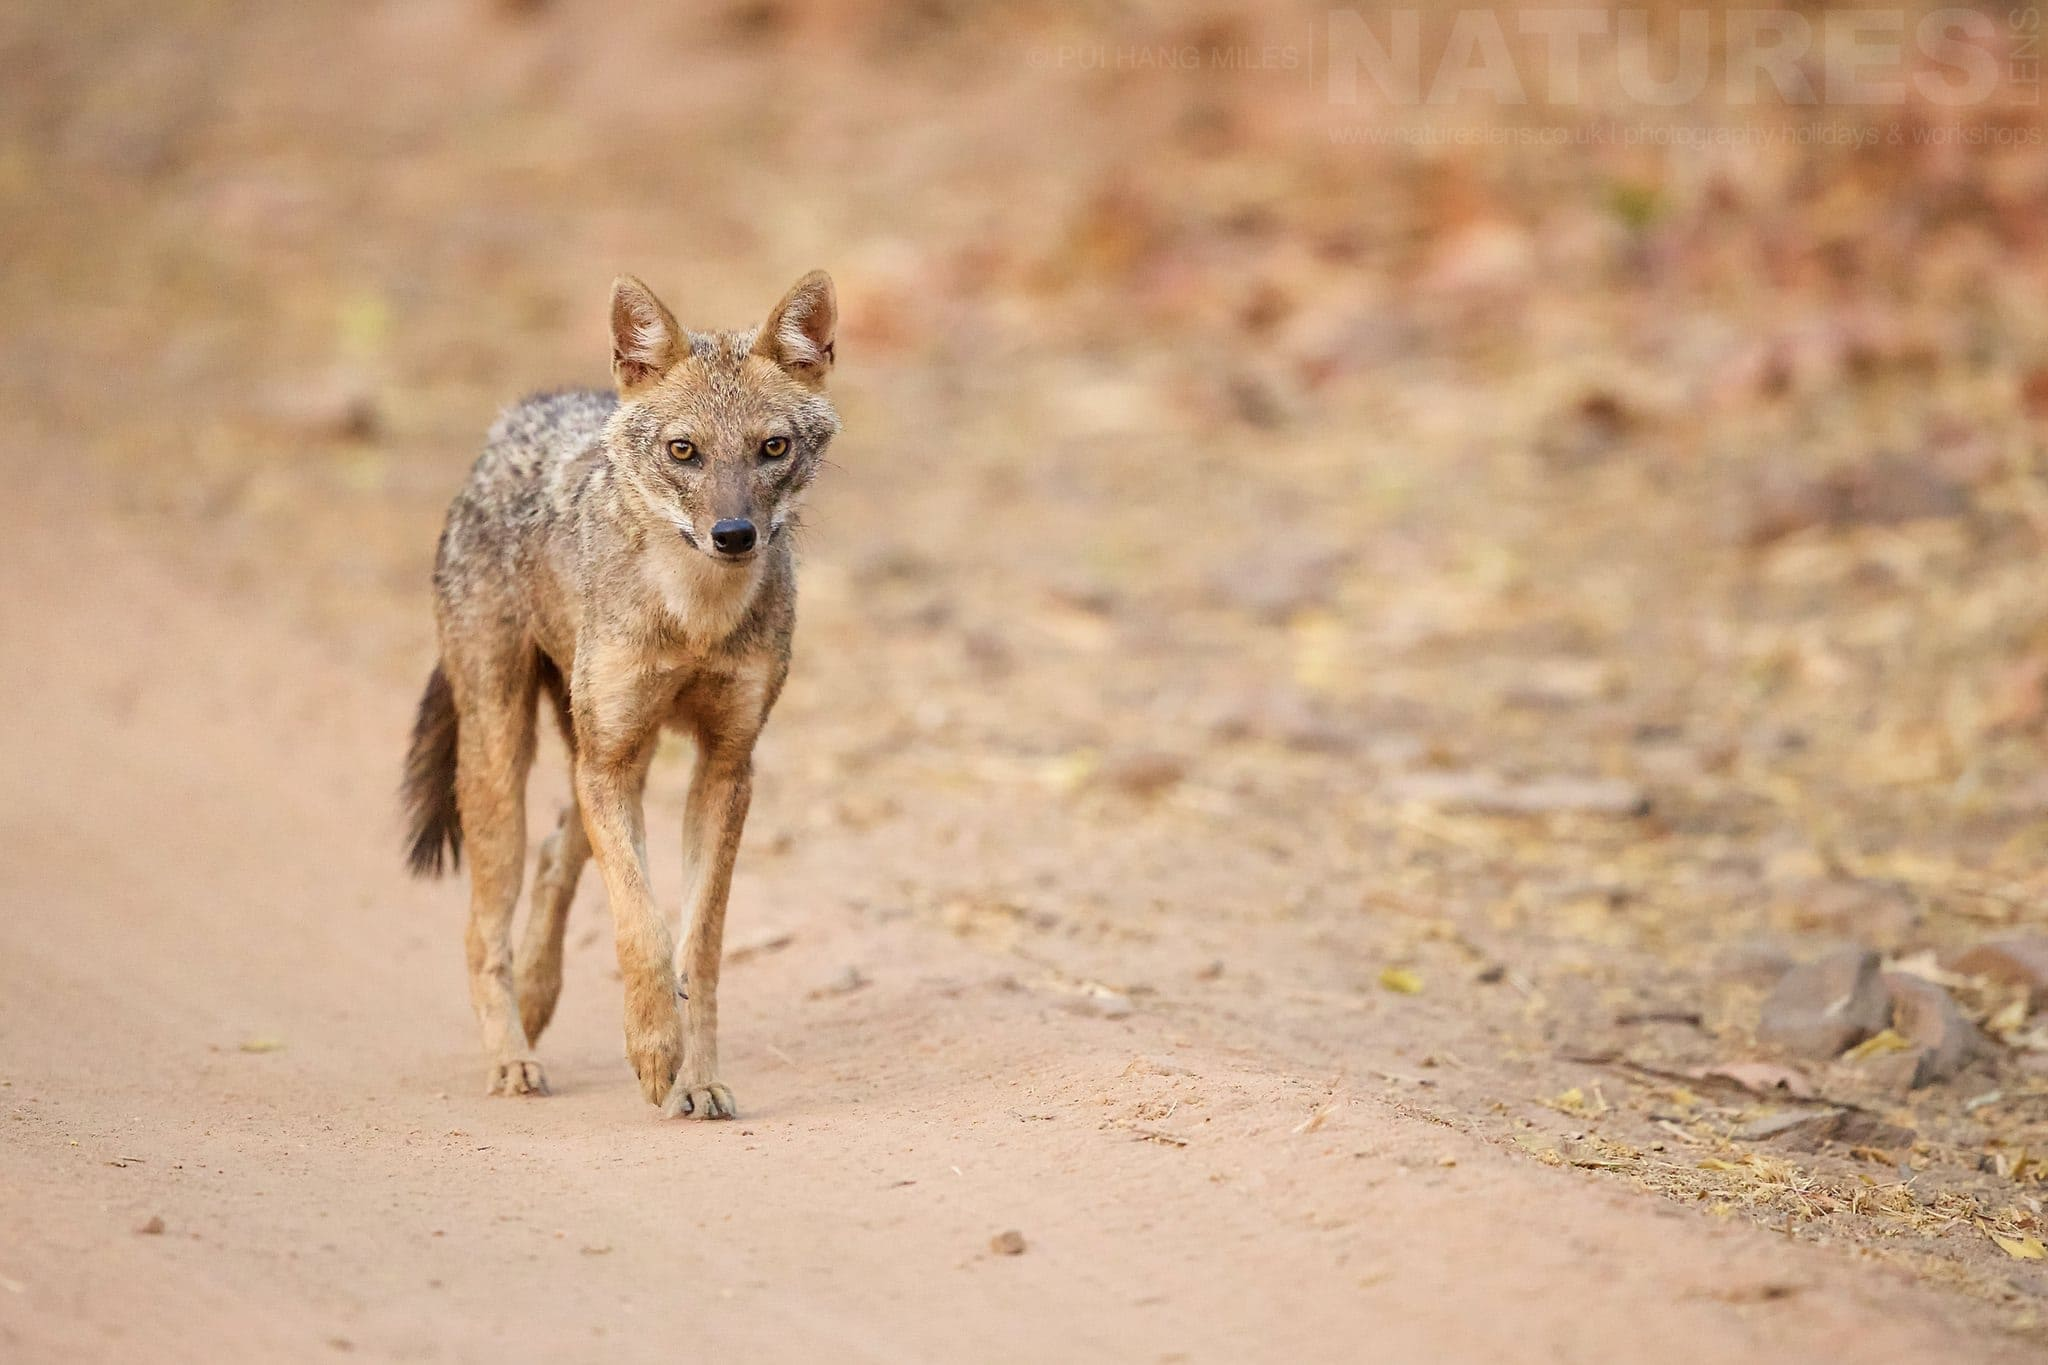 Jackal On The Road   Photographed During The NaturesLens Tigers Of Bandhavgarh Photography Holiday